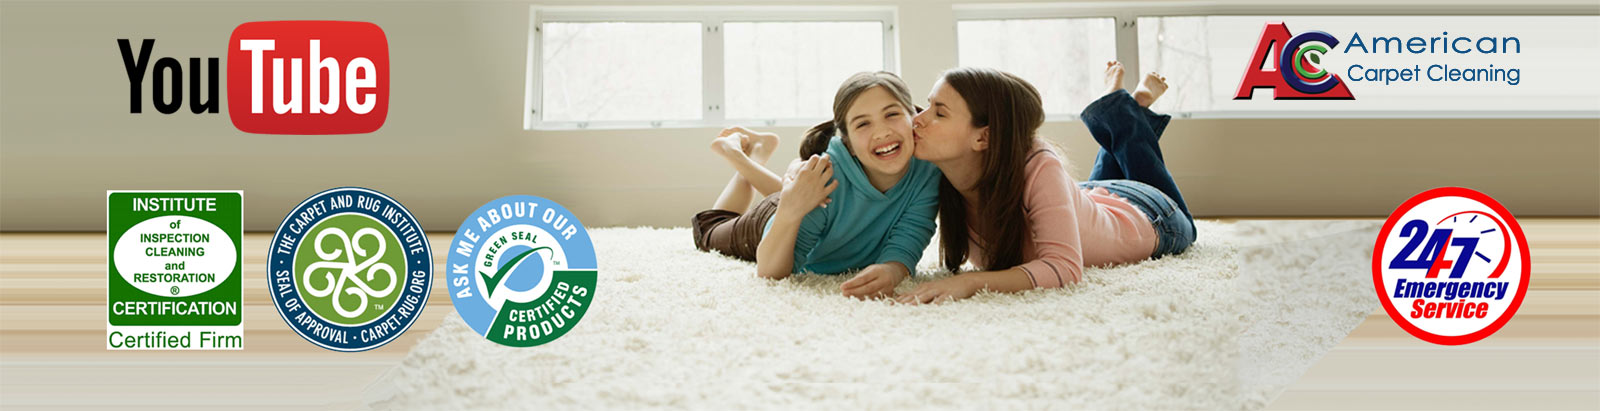 Visit American Carpet Cleaning YouTube Channel for more Carpet Cleaning in Santa Clarita Valley | Carpet Cleaning Service in Santa Clarita Valley | FREE Carpet Cleaning Quote in Santa Clarita Valley, CA | Carpet Cleaning Service in Santa Clarita Valley, CA | Carpet Cleaning in Santa Clarita Valley, CA | Santa Clarita Valley Carpet Cleaning | Carpet Cleaning Service in Thousand Oaks, CA | Carpet Cleaning Service in Simi Valley, CA | Carpet Cleaning Service in San Fernando Valley, CA | Carpet Cleaning Service in Santa Clarita Valley, CA | Carpet Cleaning Service in Ventura, CA | Carpet Cleaning Service in Beverly Hills, CA | Carpet Cleaning Service in Malibu, CA